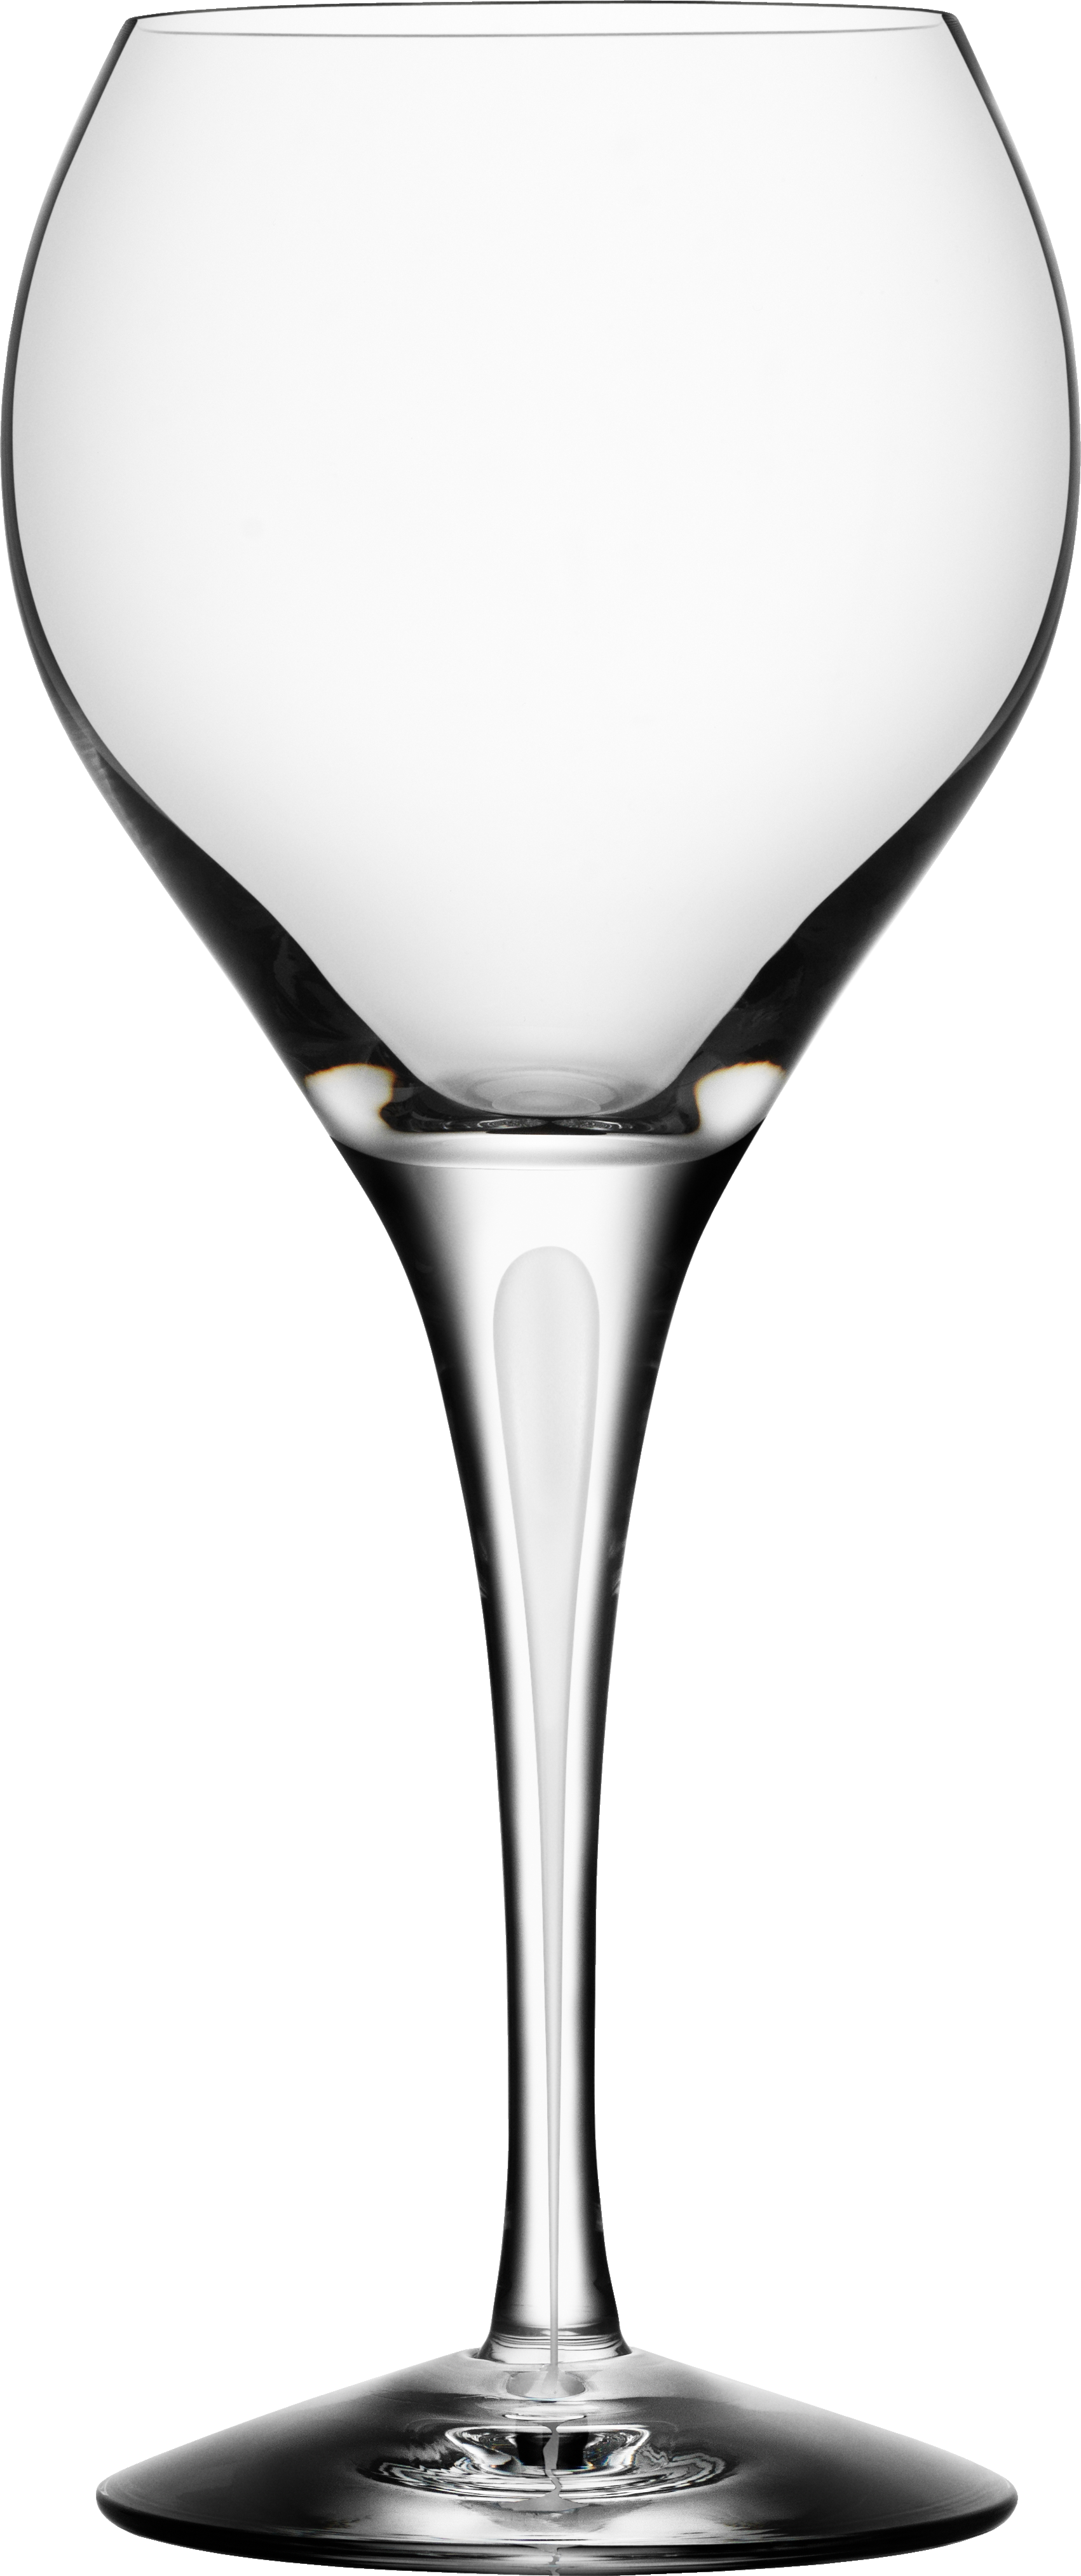 Png picture web icons. Glass clipart empty glass